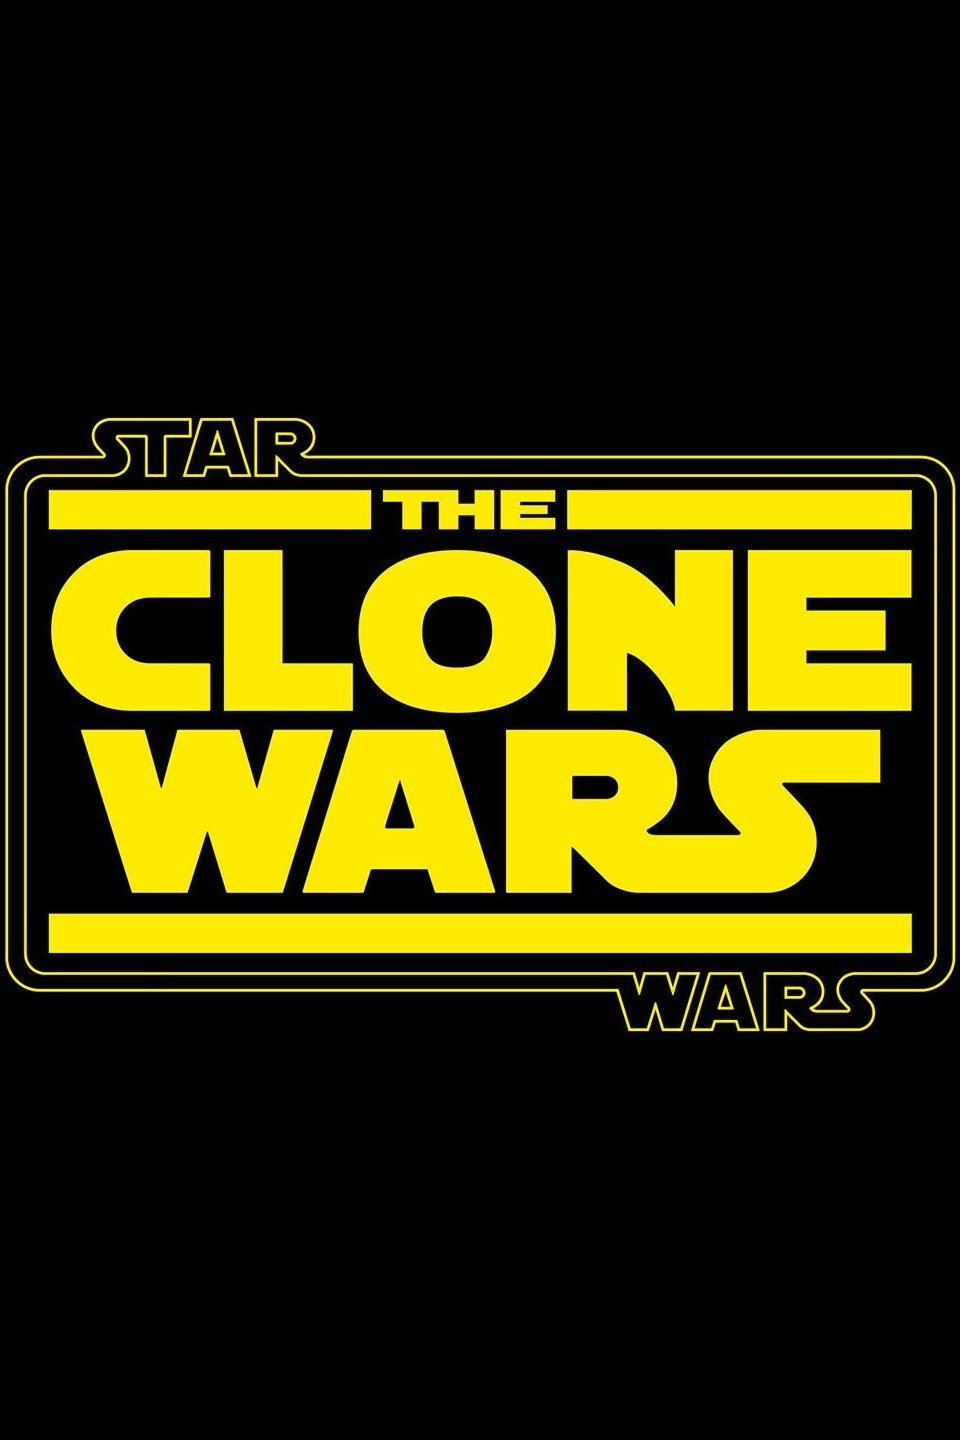 Star Wars: The Clone Wars (CGI Animated Series)